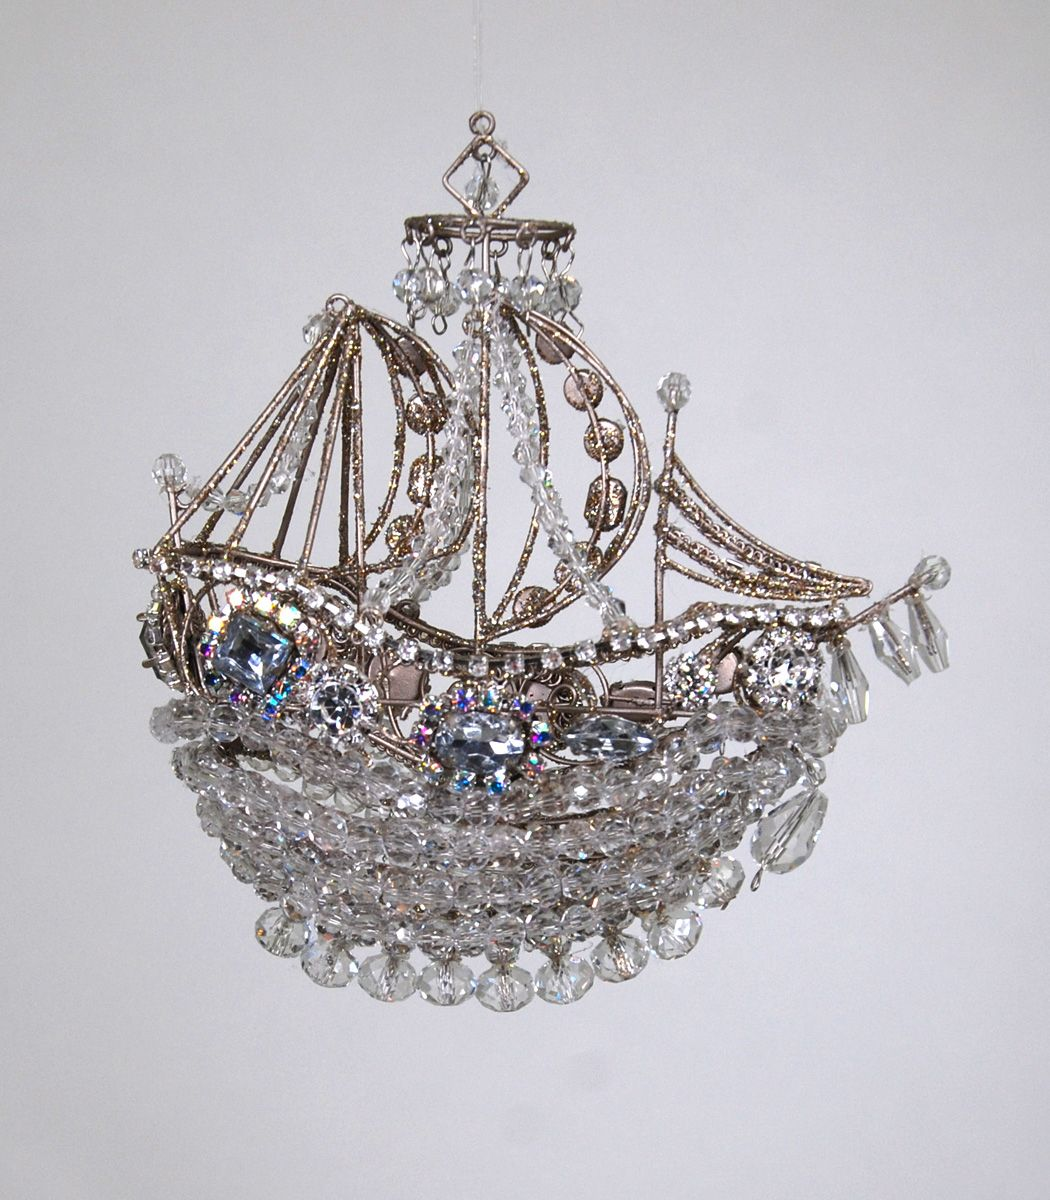 Pin by diahann bisacca on let them eat cake pinterest eat cake 403 forbidden crystal shipnautical christmasghost shipchristmas timechristmas ornamentschandelierseat arubaitofo Image collections